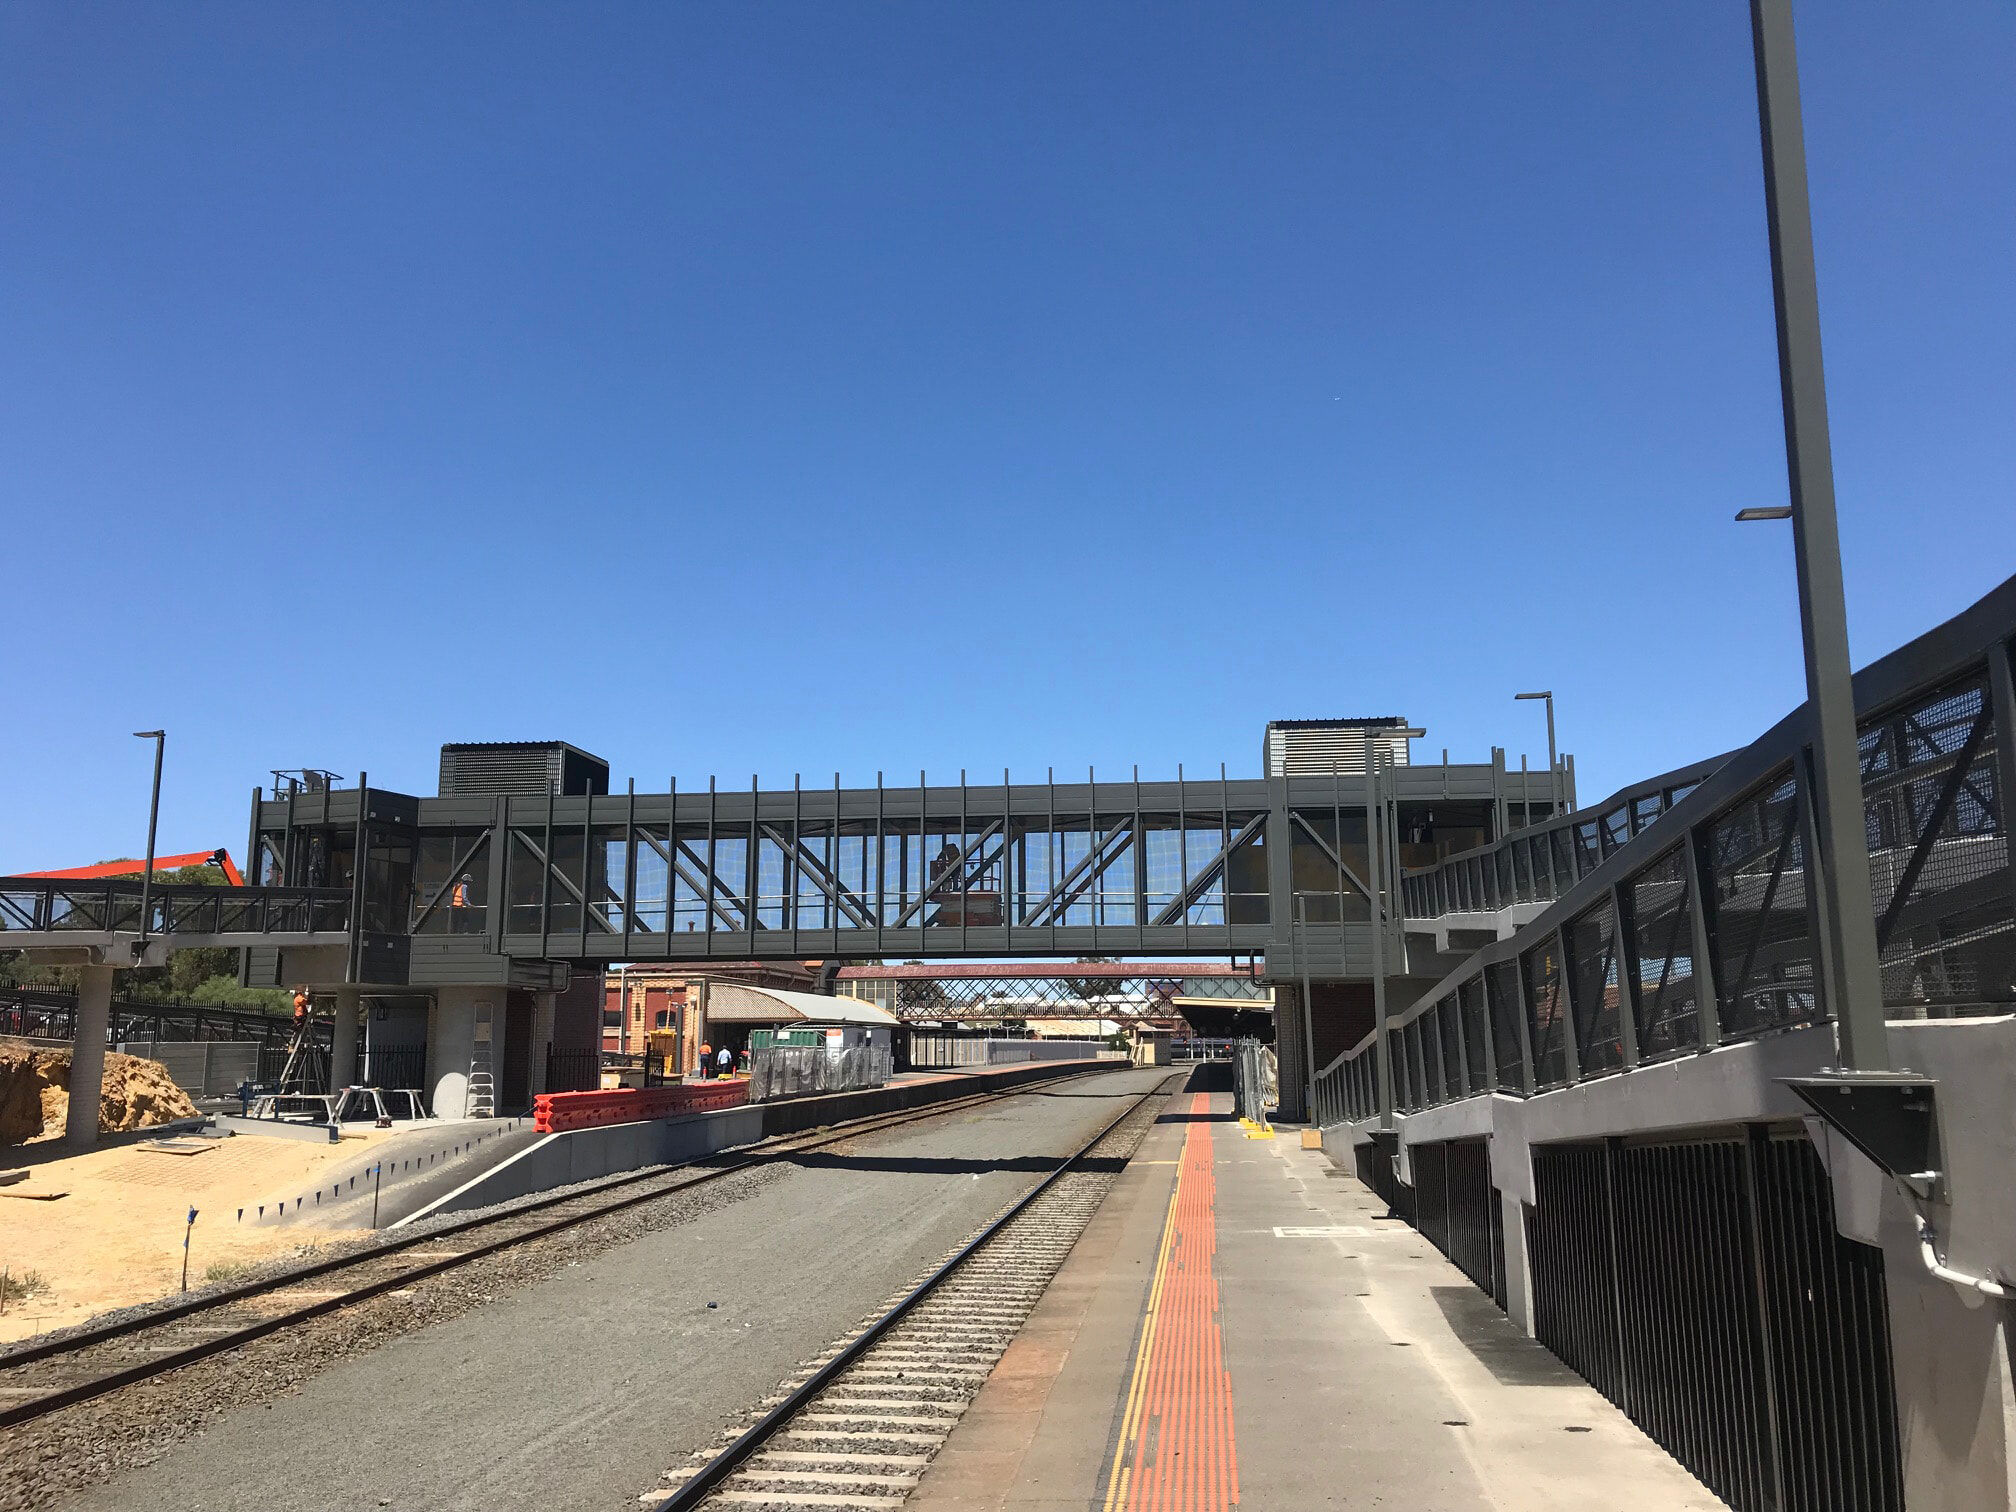 Railway Crossover bridge and lifts and ramp